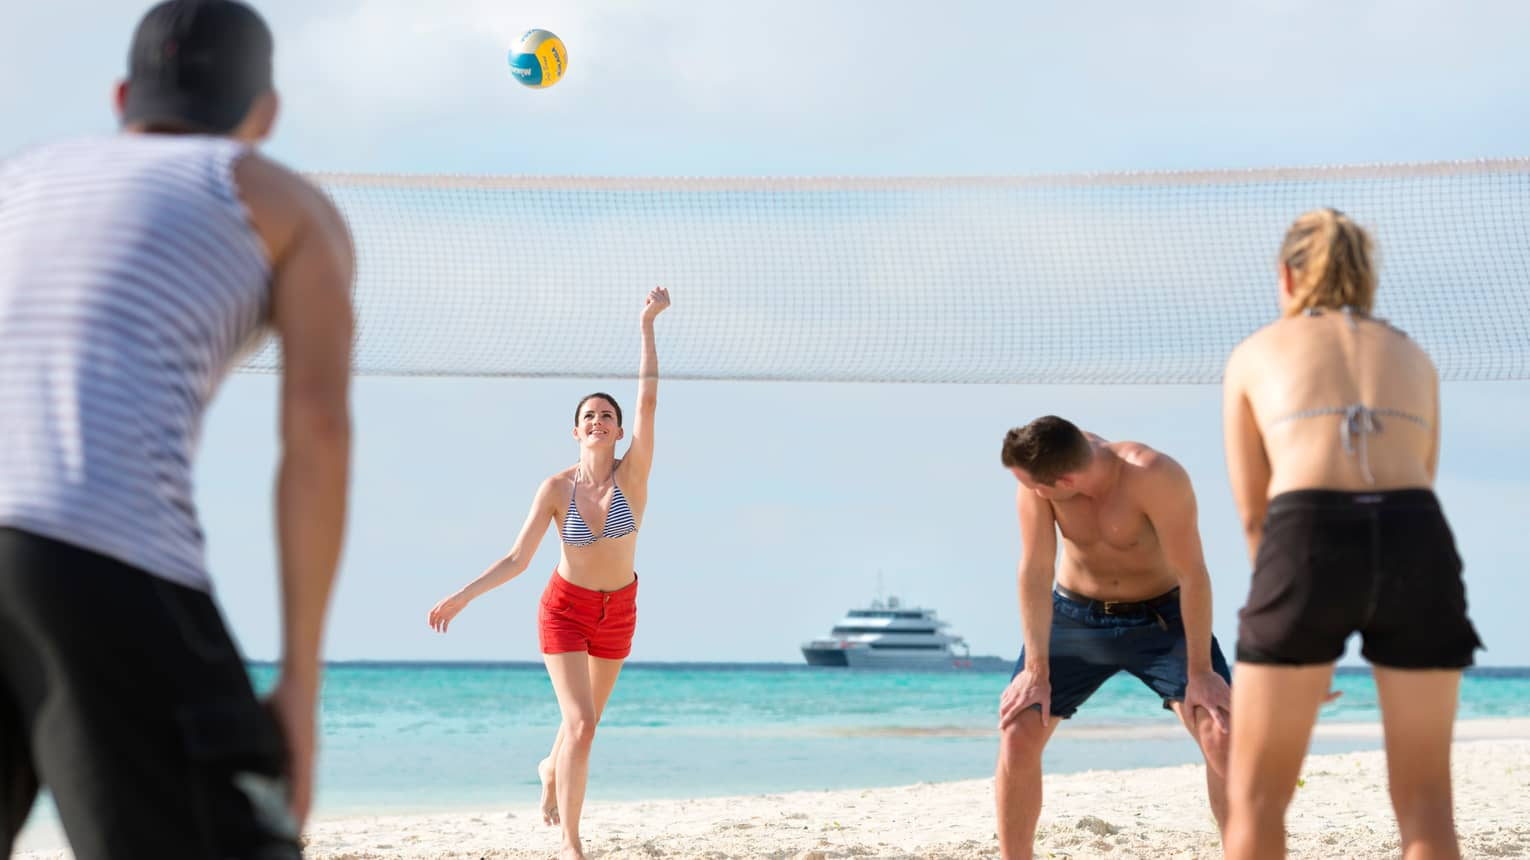 Woman serves volleyball over net as group of friends play on white sand beach